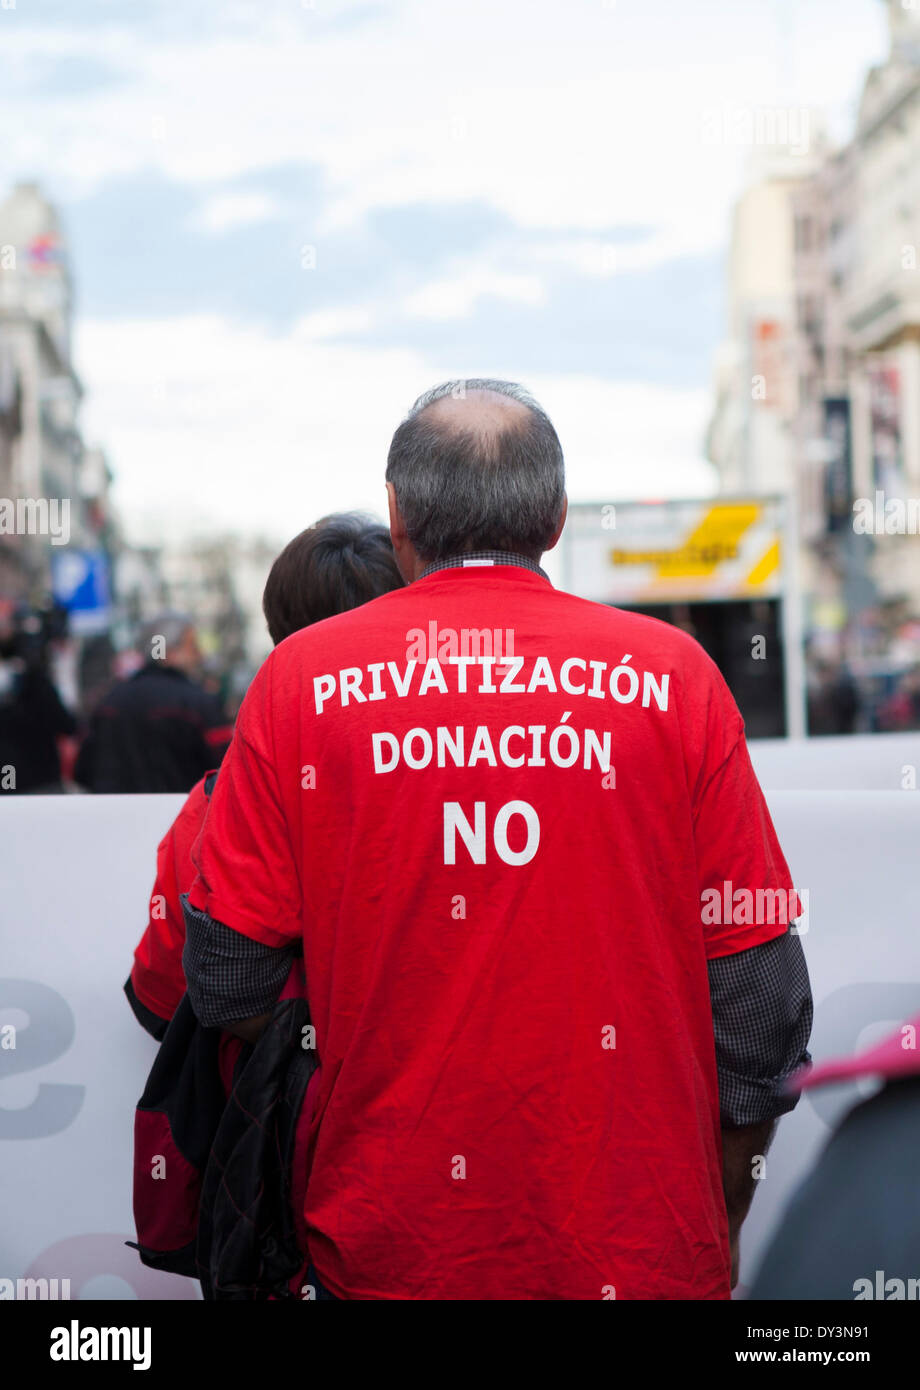 Madrid, Spain. 05th Apr, 2014. A demonstrator, his vest says ' privatization, donation, no '. Approximately 1000 persons demonstrate in Madrid in opposition to the privatization of the sanitary Spanish system. The protesters asked for the return of the hospitals already privatized to the public system and the cancellation of the law 15/1997 that enables the modification of the national system of health. Credit:  Oscar Arribas/Alamy Live News - Stock Image